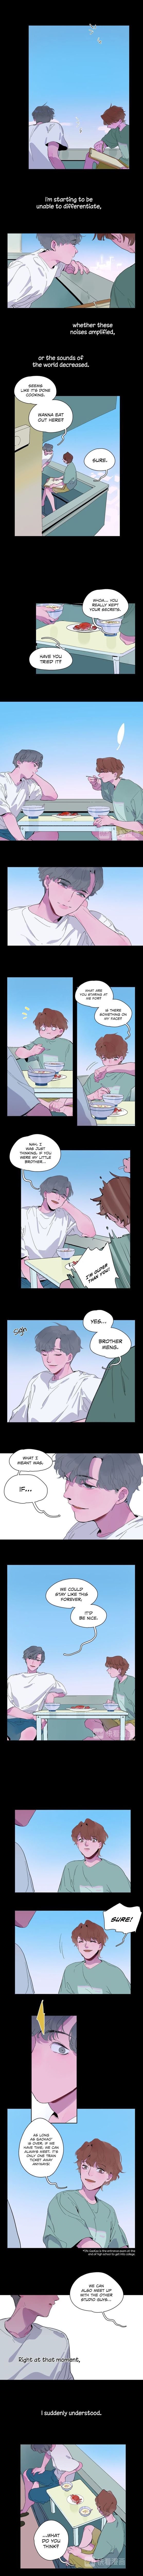 Asterism - chapter 16 - #3